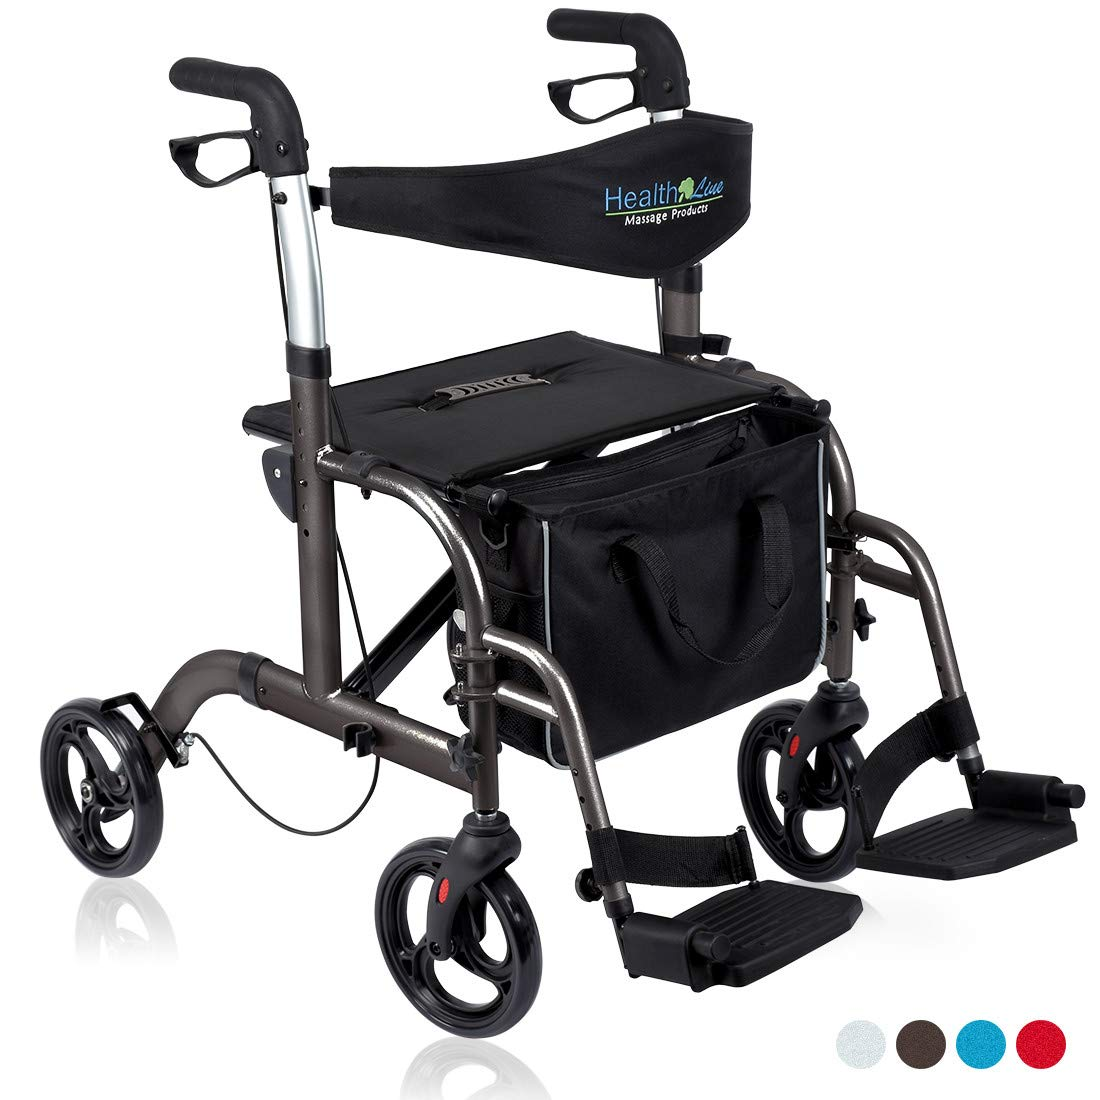 Health Line 2 in 1 Rollator-Transport Chair w/Paded Seatrest, Reversible Backrest and Detachable Footrests, Titanium by HEALTH LINE MASSAGE PRODUCTS